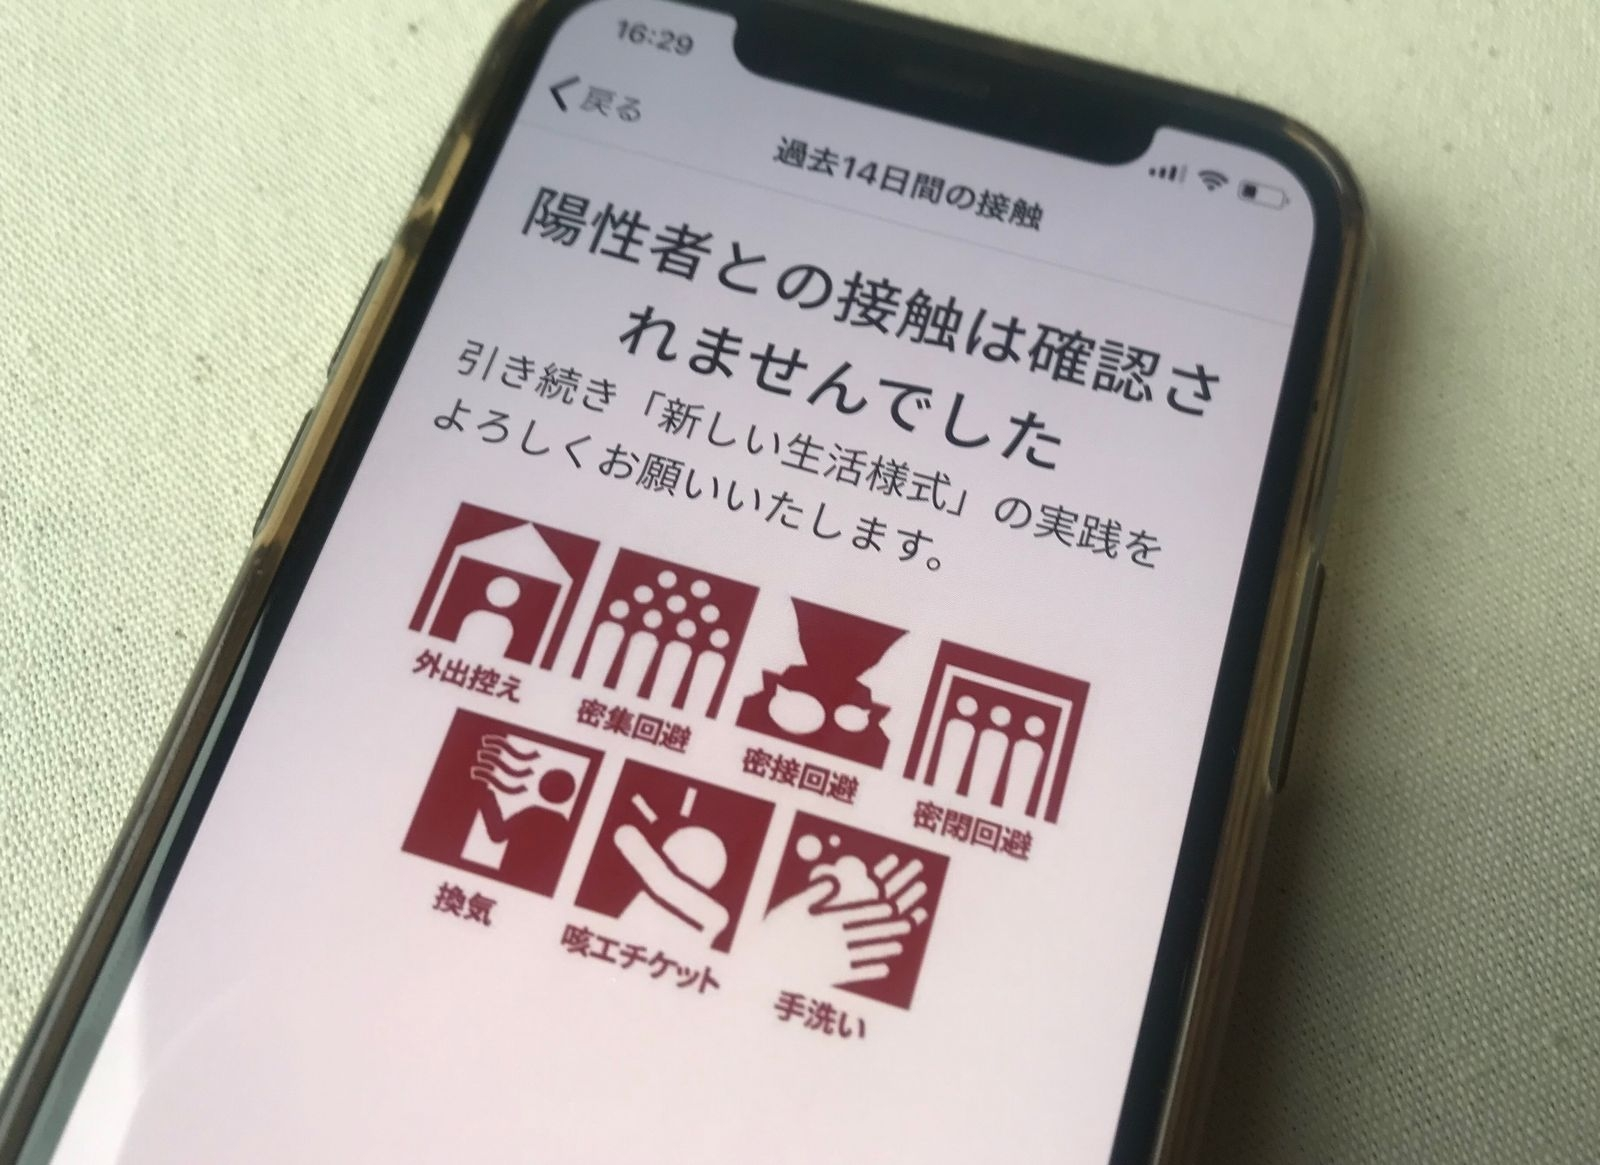 iOS版の「接触確認アプリ」 (撮影:日経クロステック)